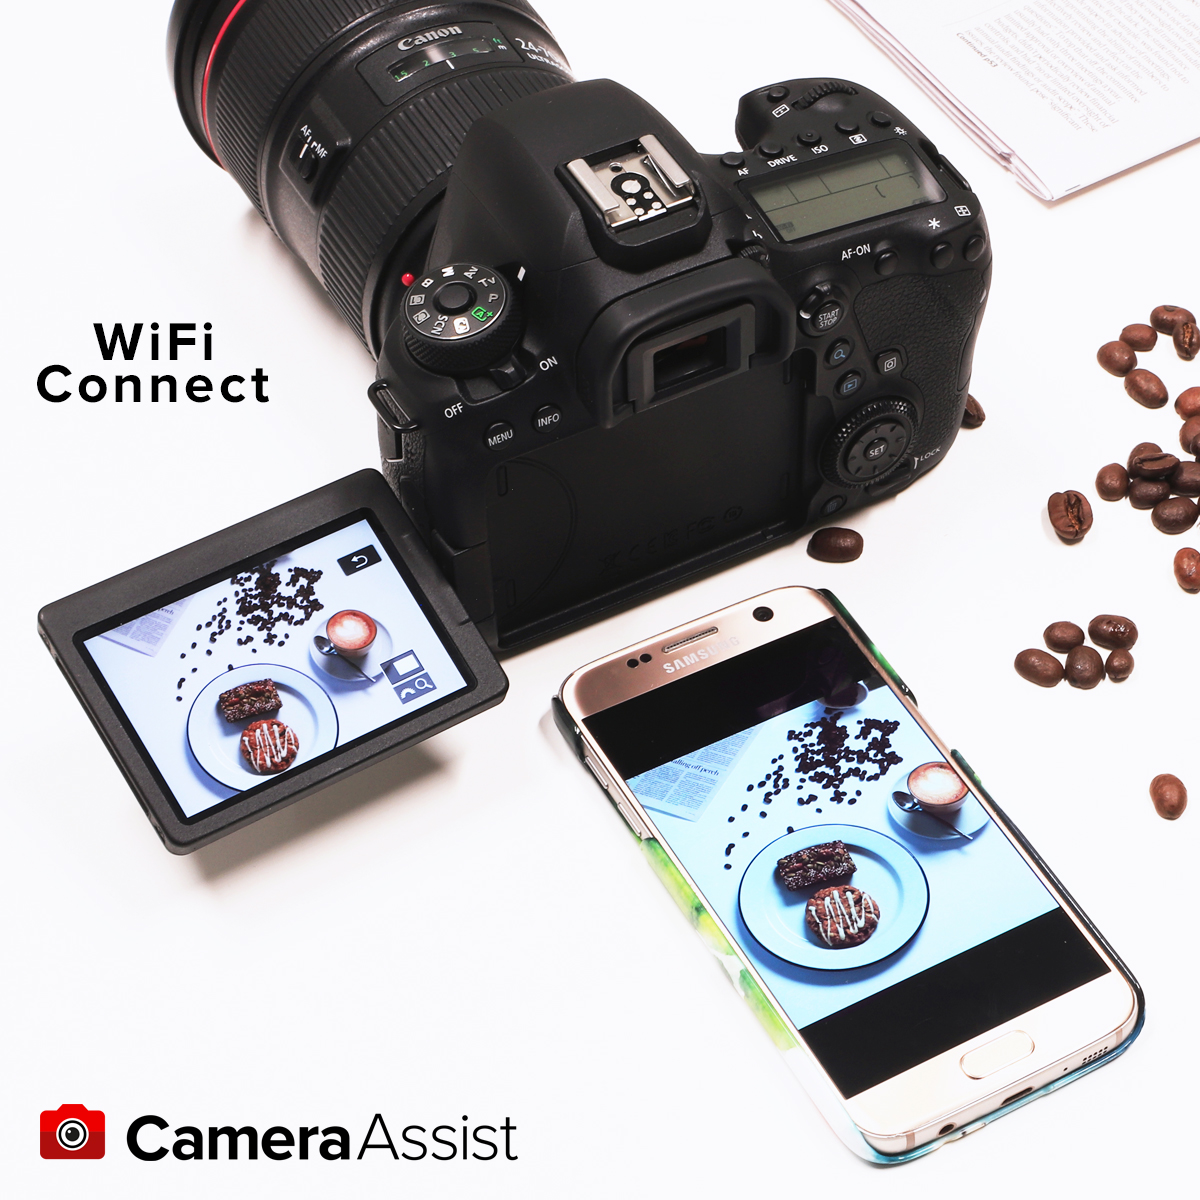 Promo image of Canon connect app